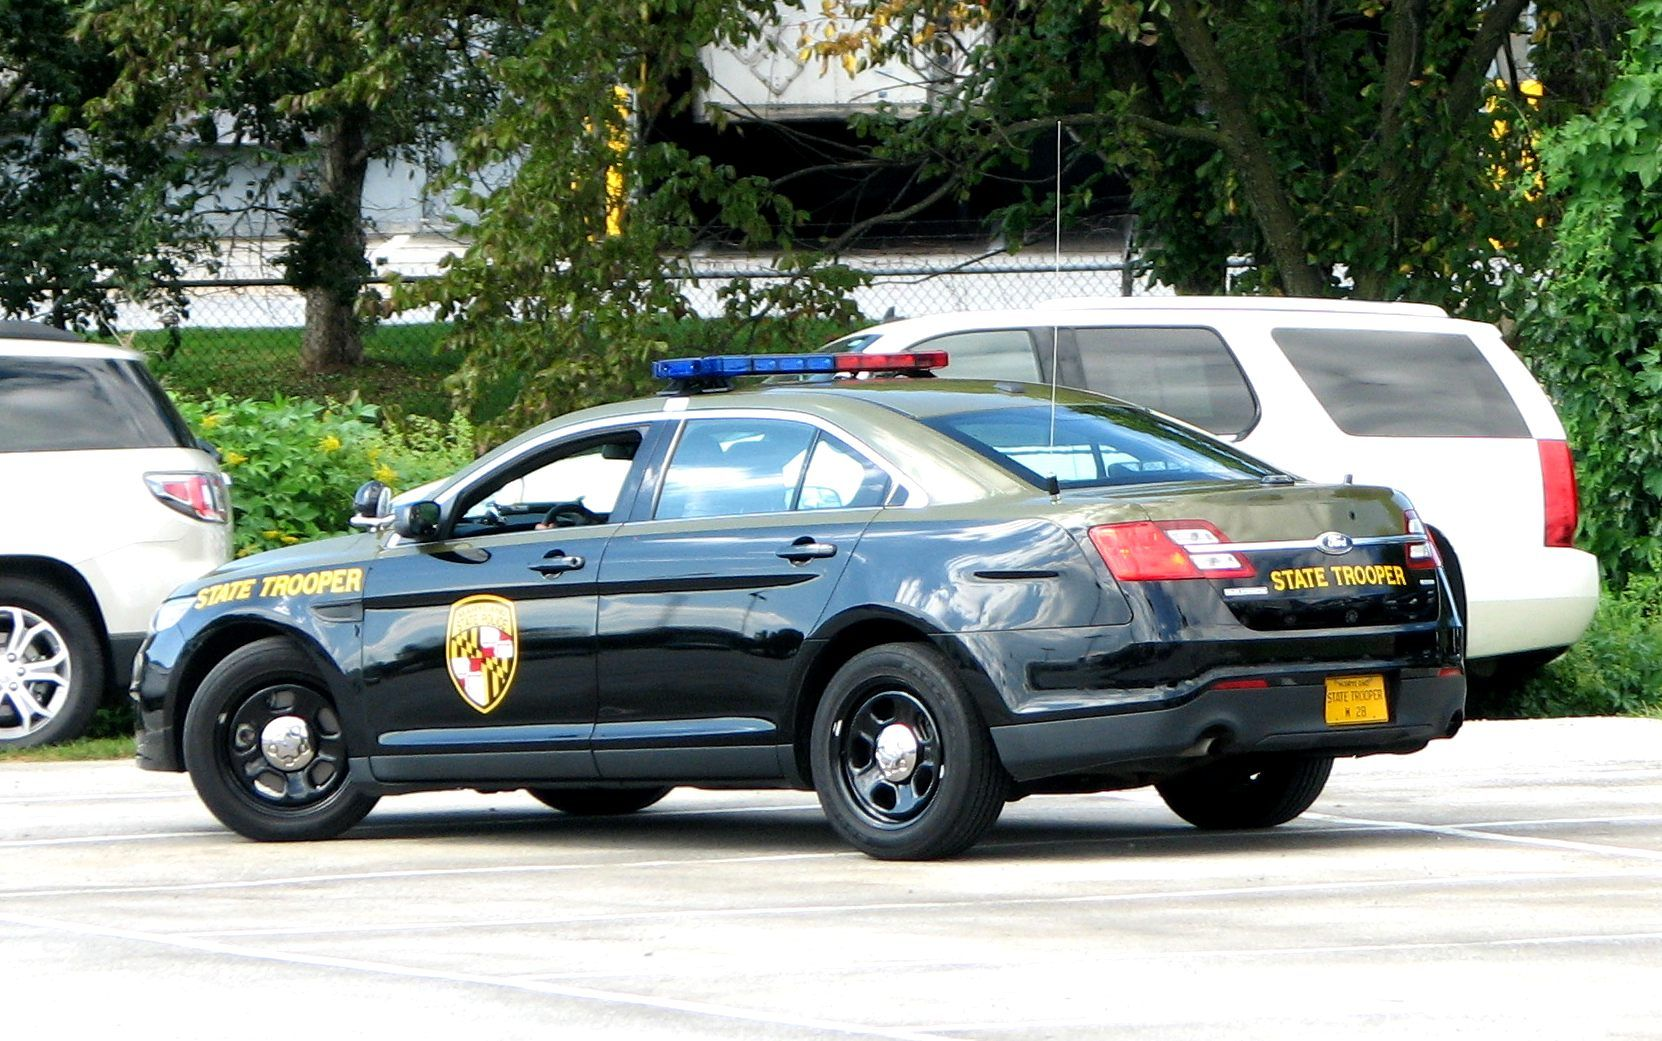 Maryland State Police Ford Interceptor Vehicle Ford Police